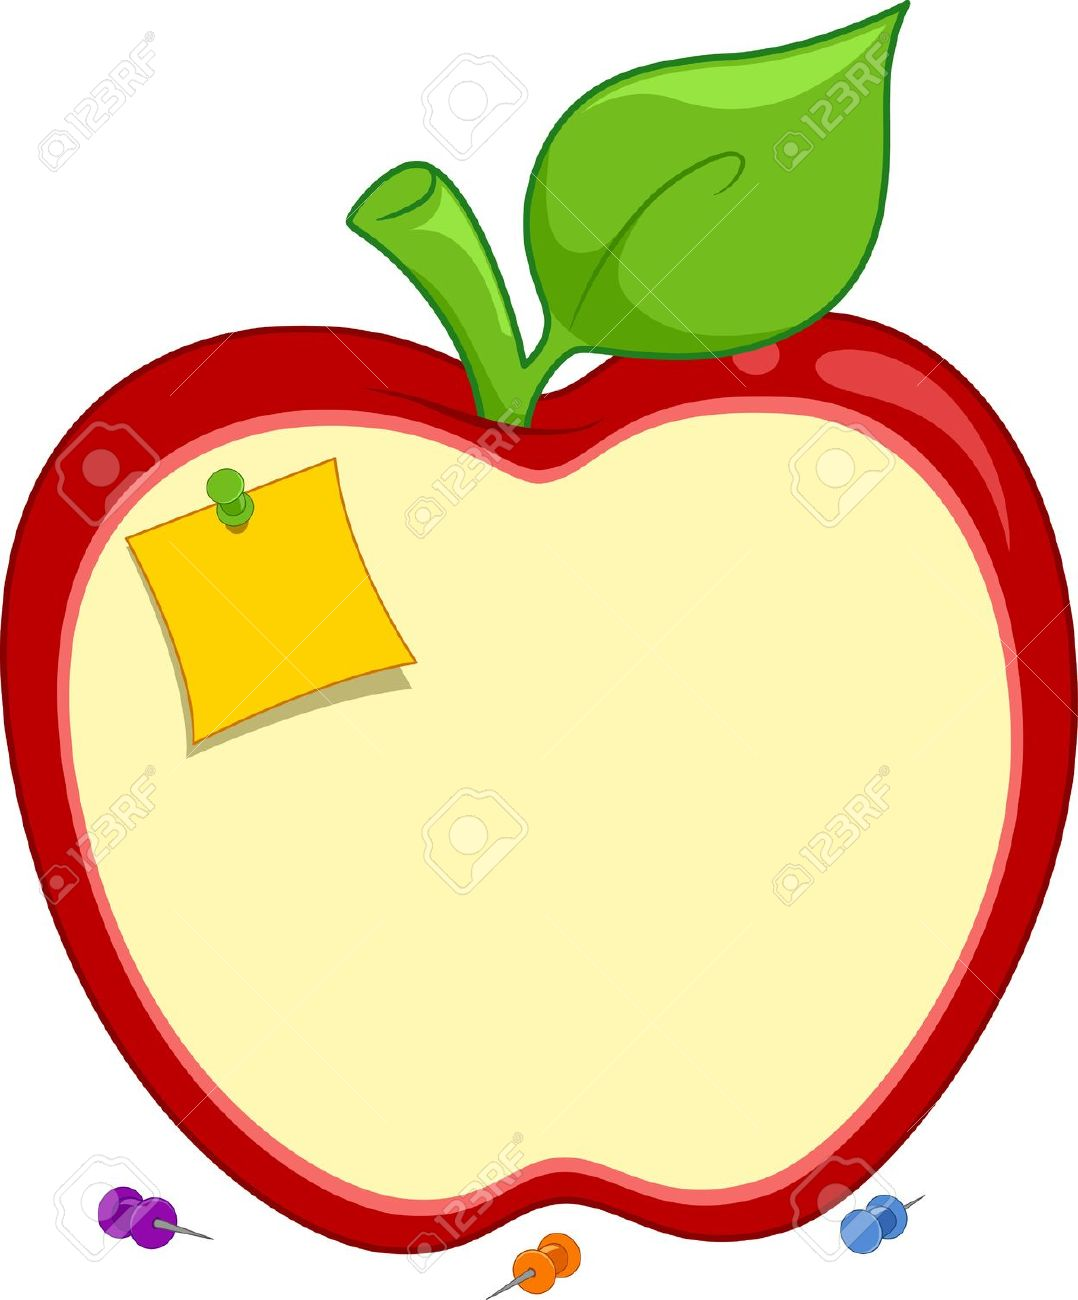 Apple frame clipart vector library stock Apple Shape Clipart | Free download best Apple Shape Clipart on ... vector library stock